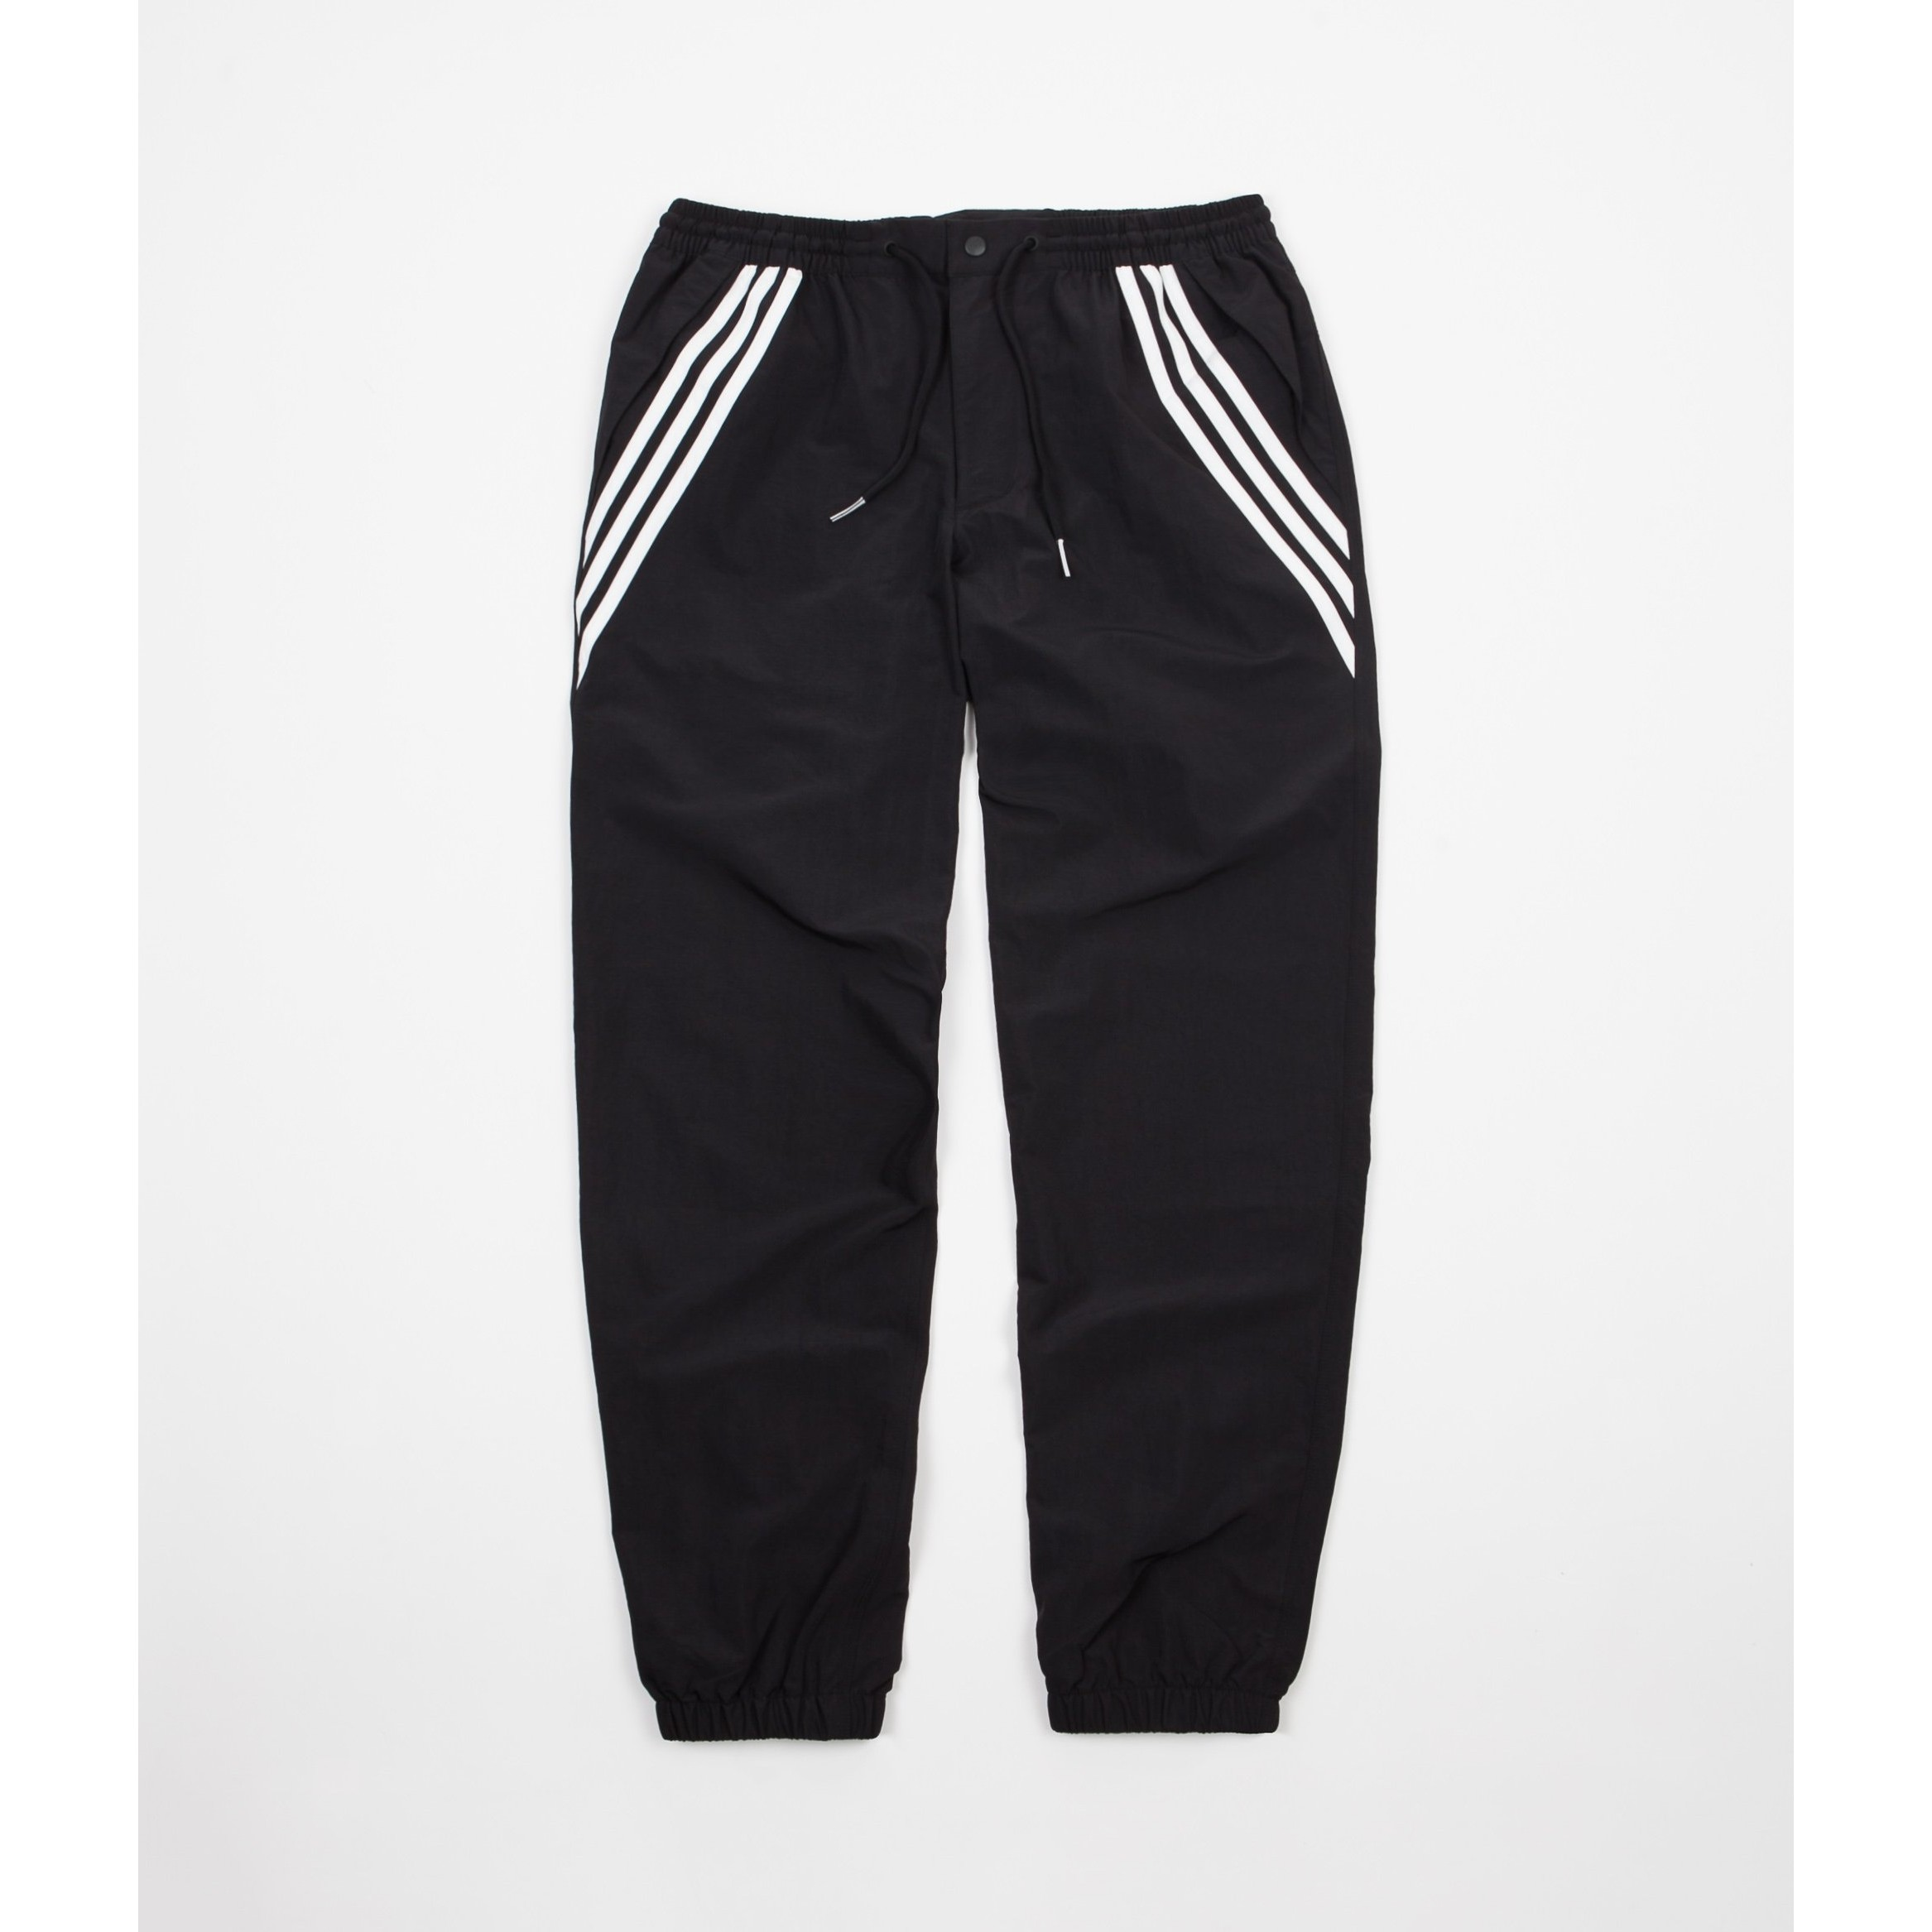 Work Shop Pants (Black/White)